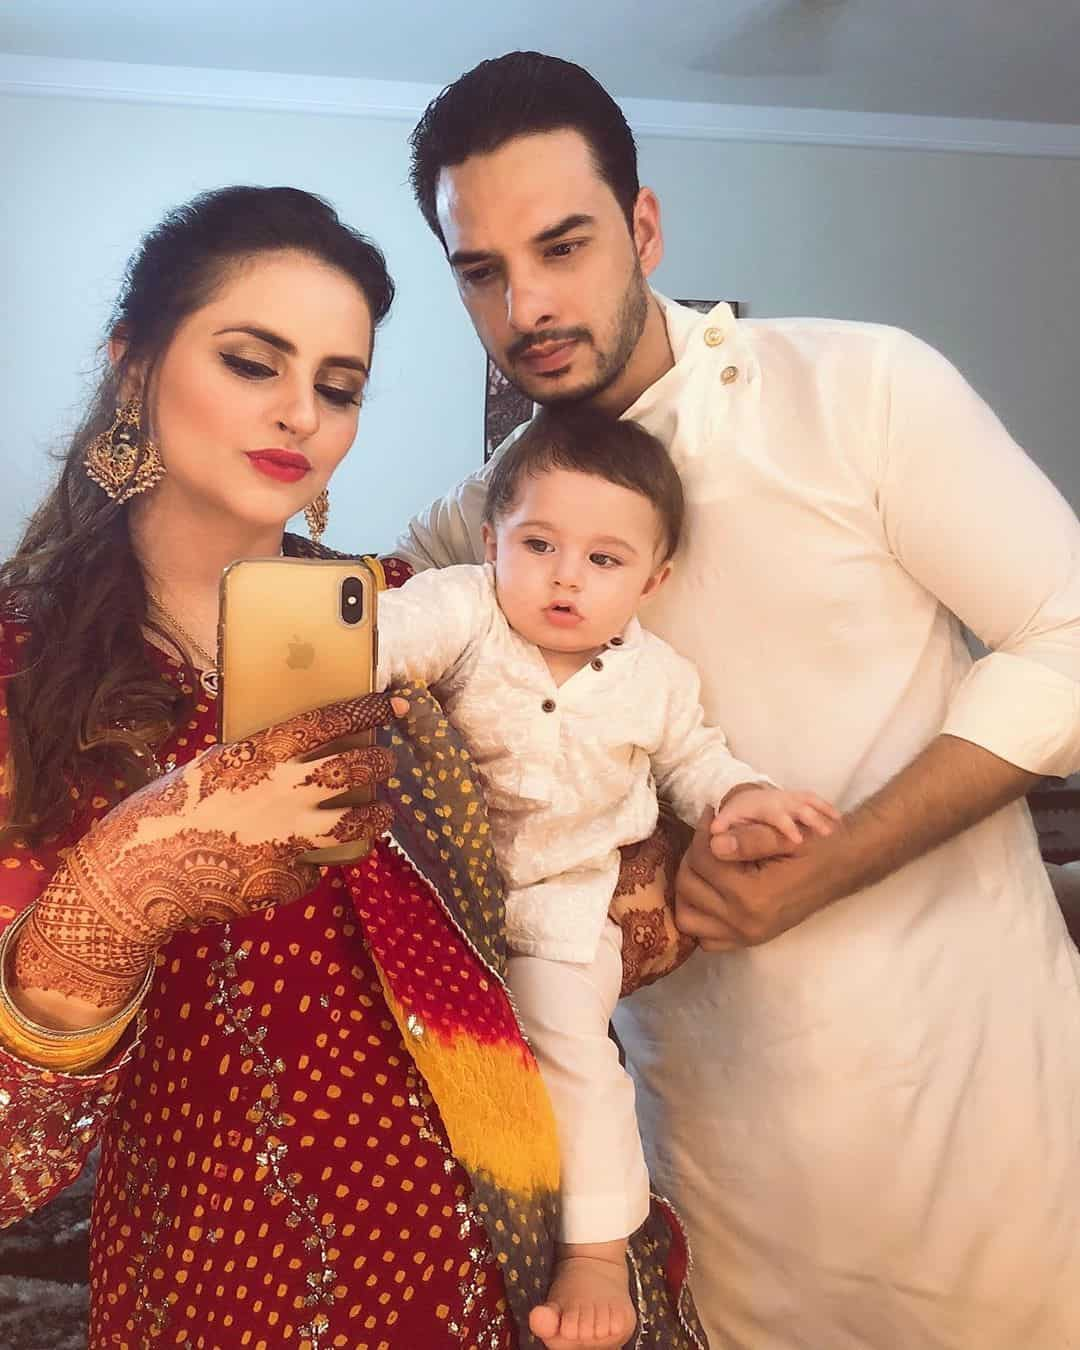 Fatima Effendi with her family from Recent Event